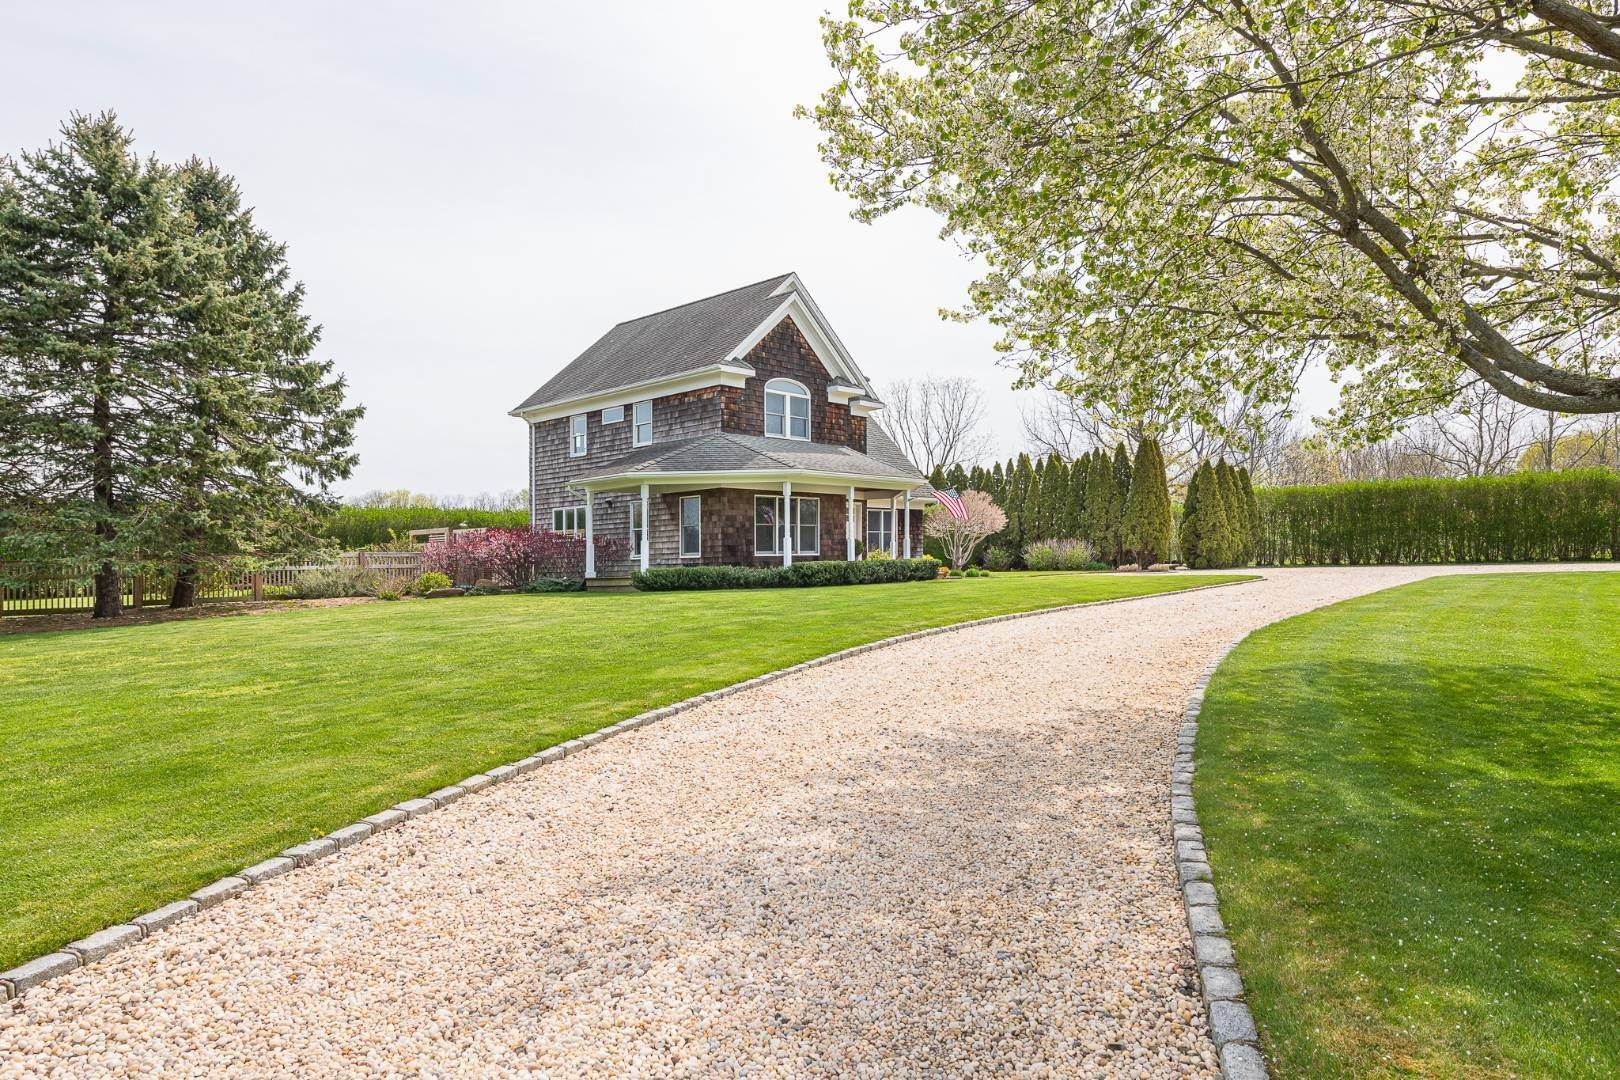 Single Family Home for Sale at Sophisticated Farmhouse With Farm Views & Close To Everything 93 Grant Dr, Aquebogue, NY 11901